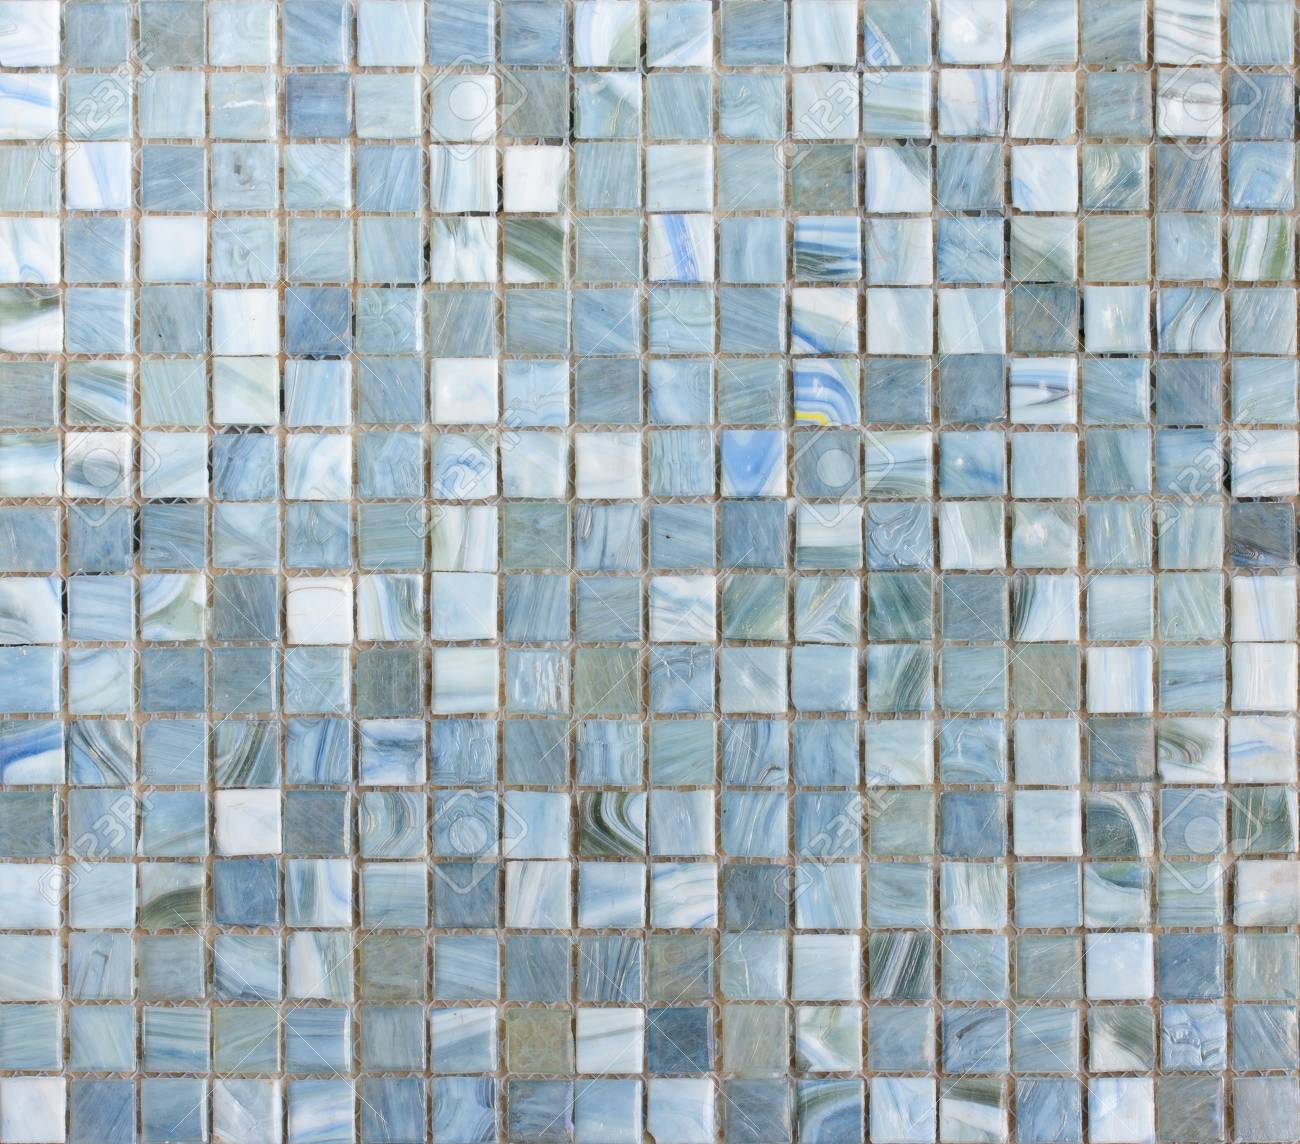 Blue Mosaic Tiles Abstract Texture And Background Stock Photo ...